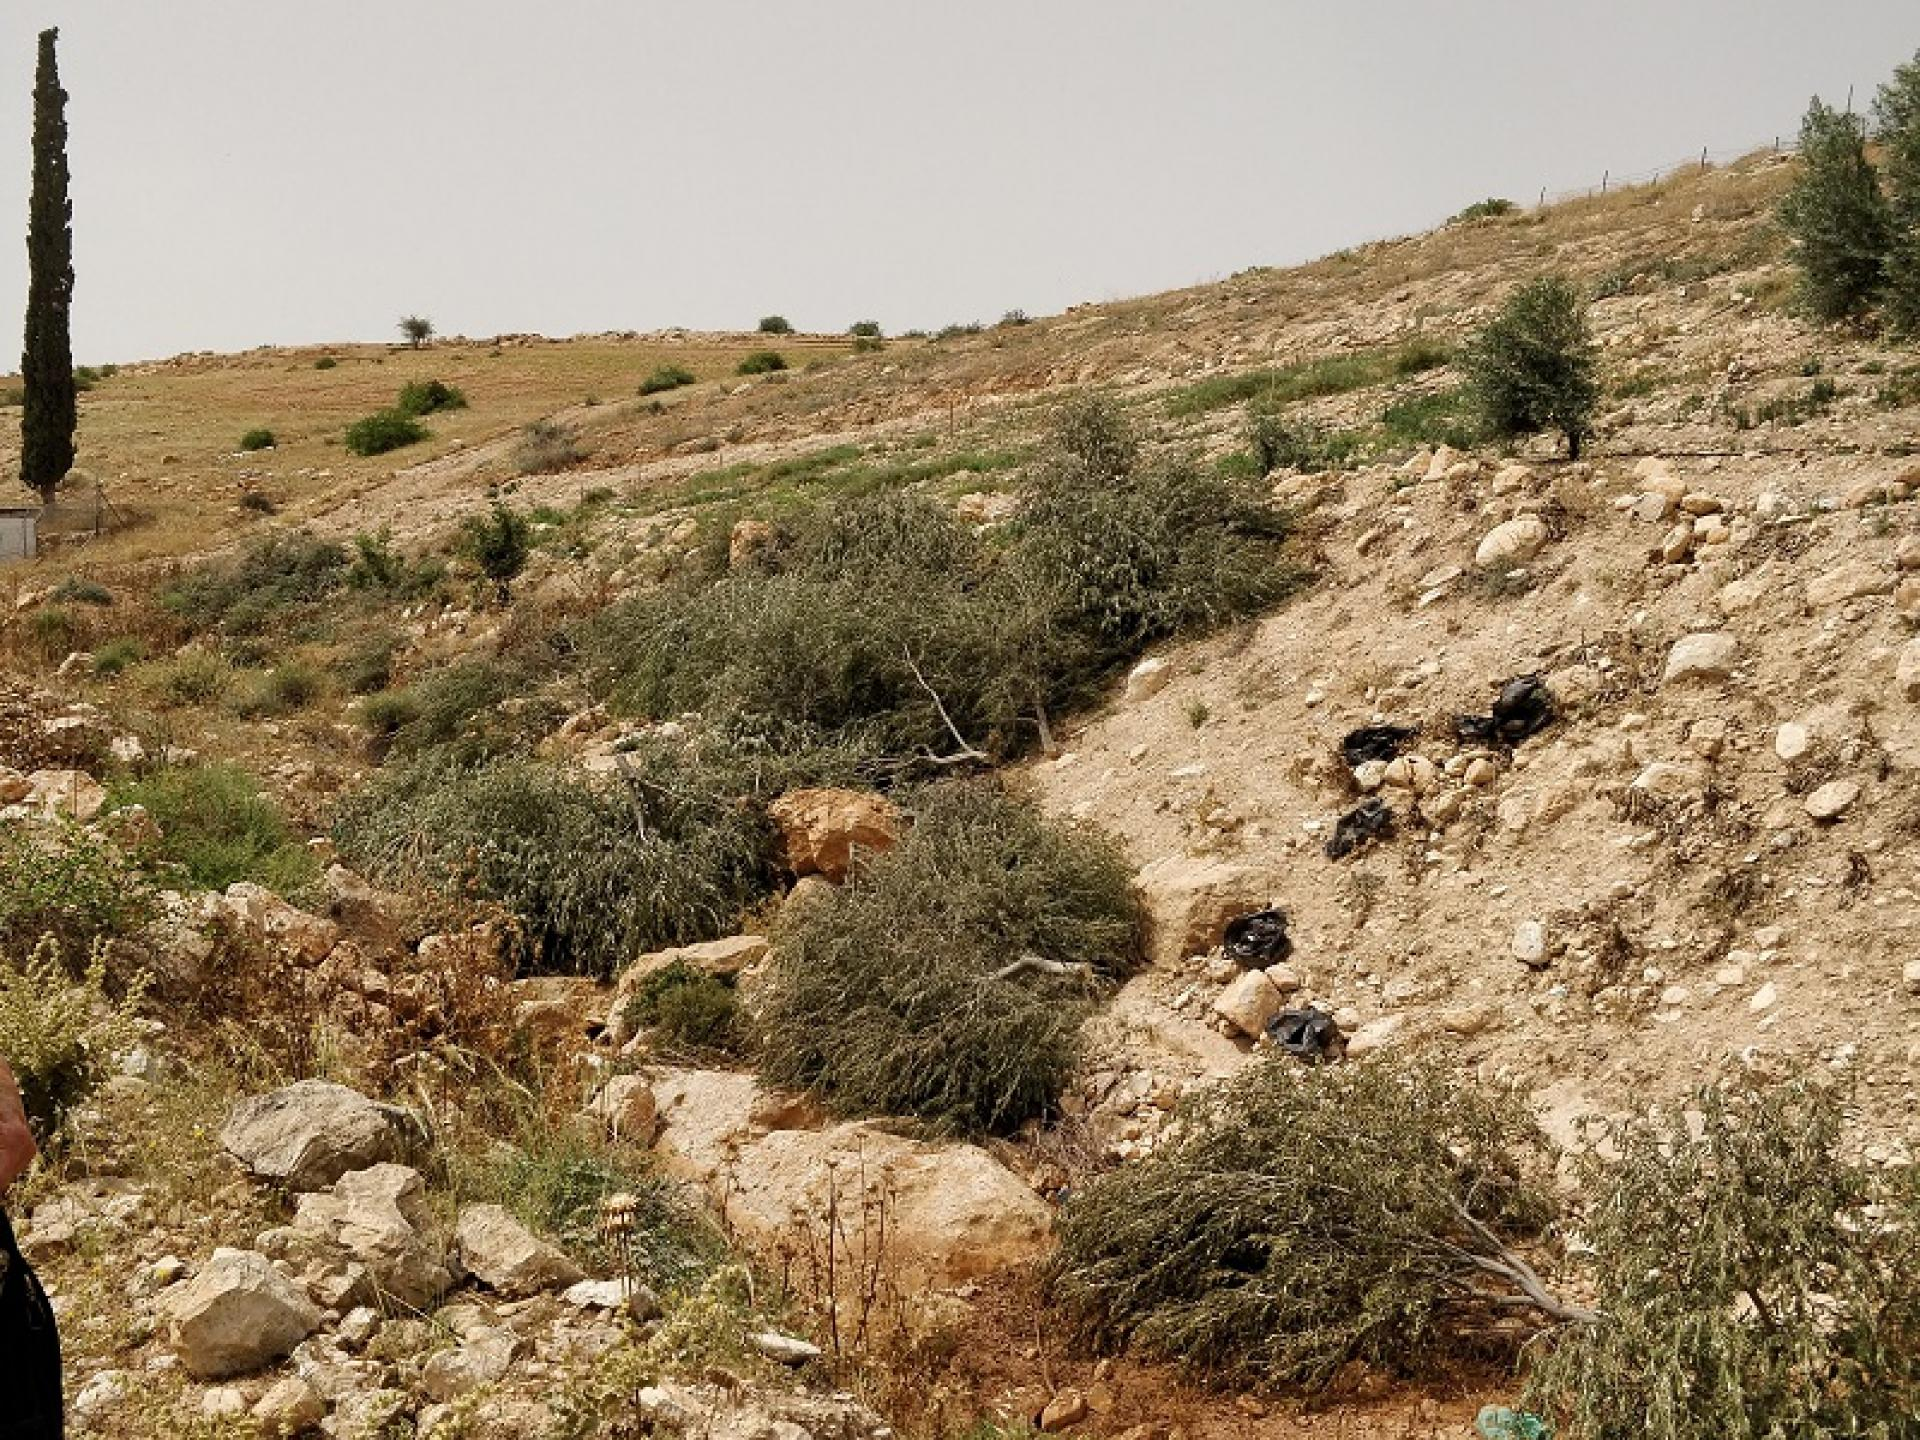 Bardala, Northern Palestinian Jordan Valley: young olive trees uprooted by Israeli soldiers